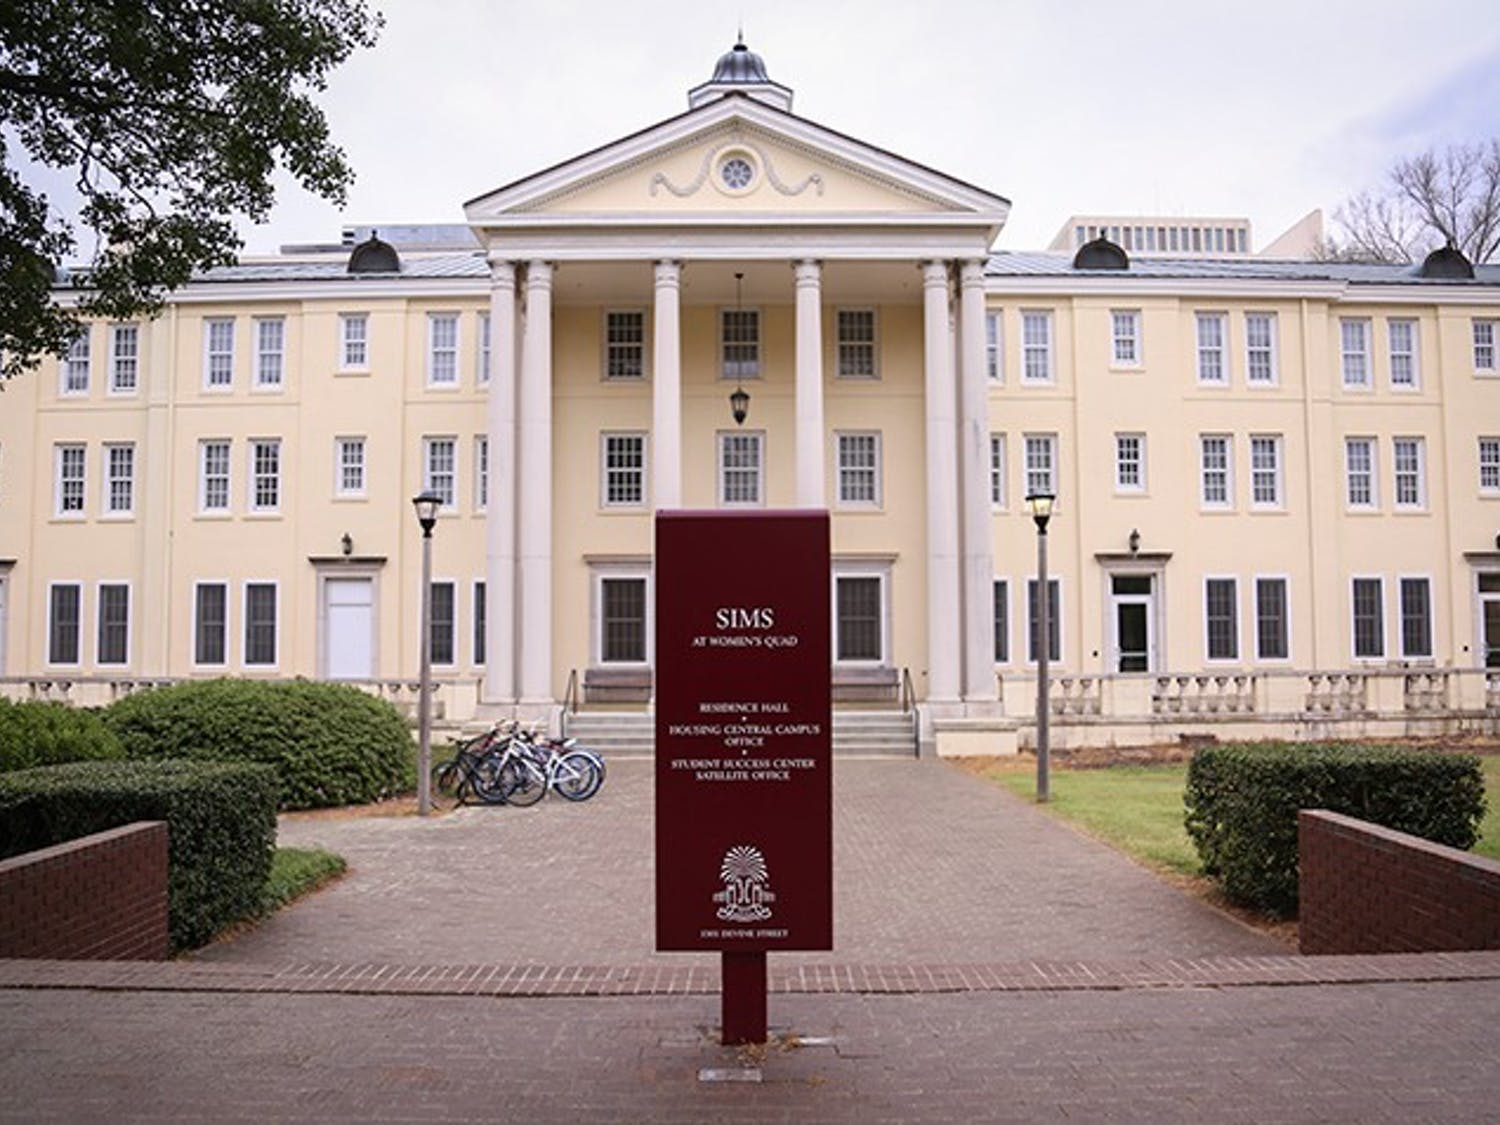 The Sims residence hall, located on Bull Street, makes up a section of Women's Quad. A name change is being discussed for the building.